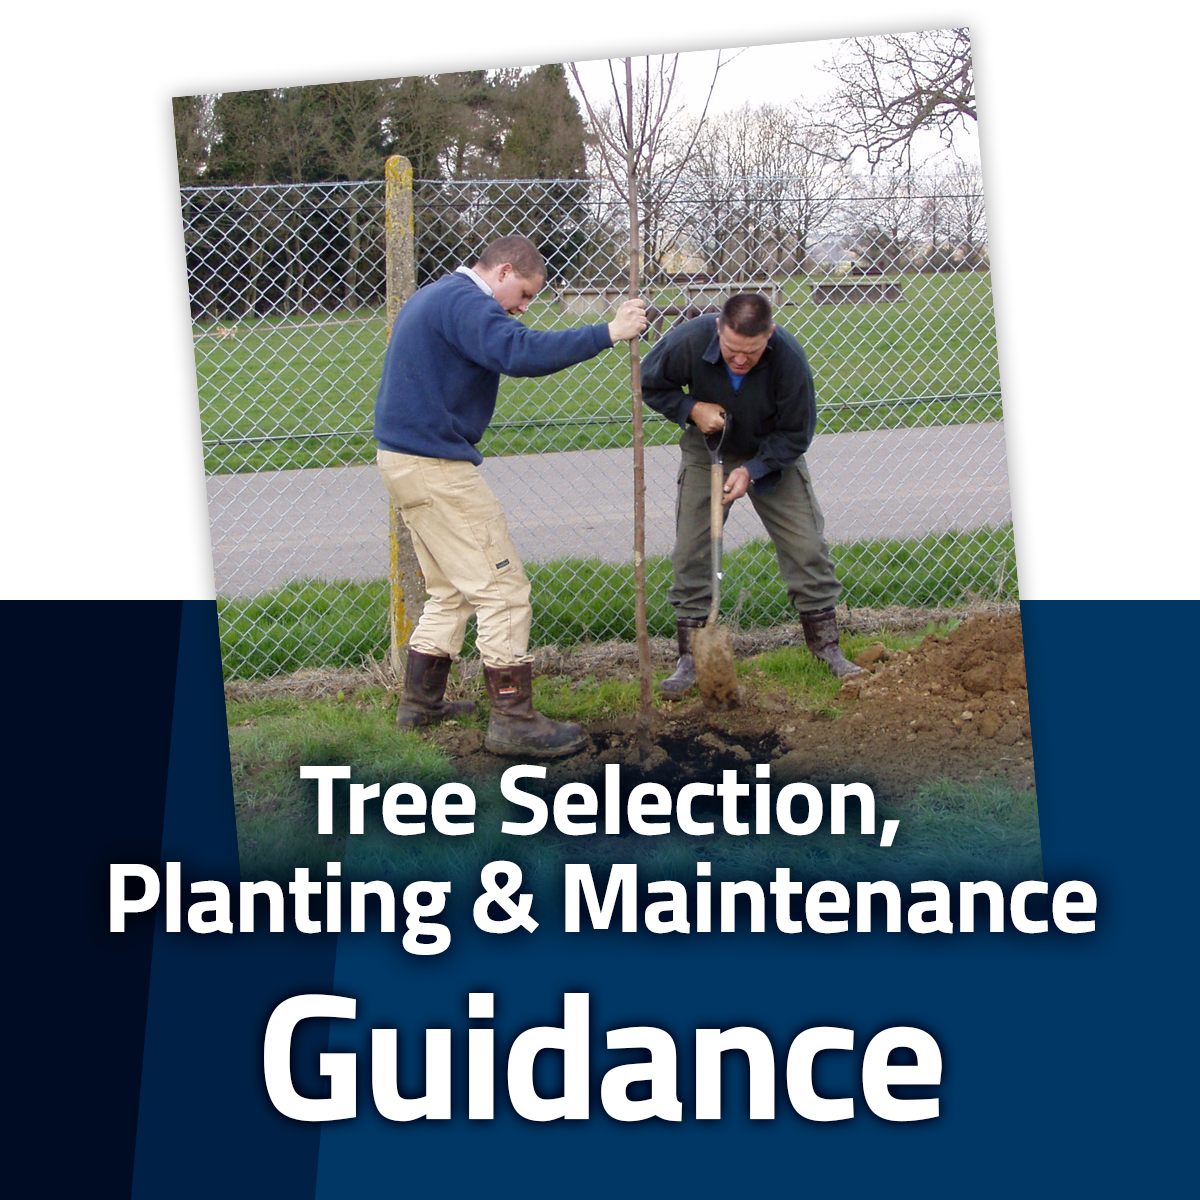 Guide to Tree Selection, Planting and Maintenance